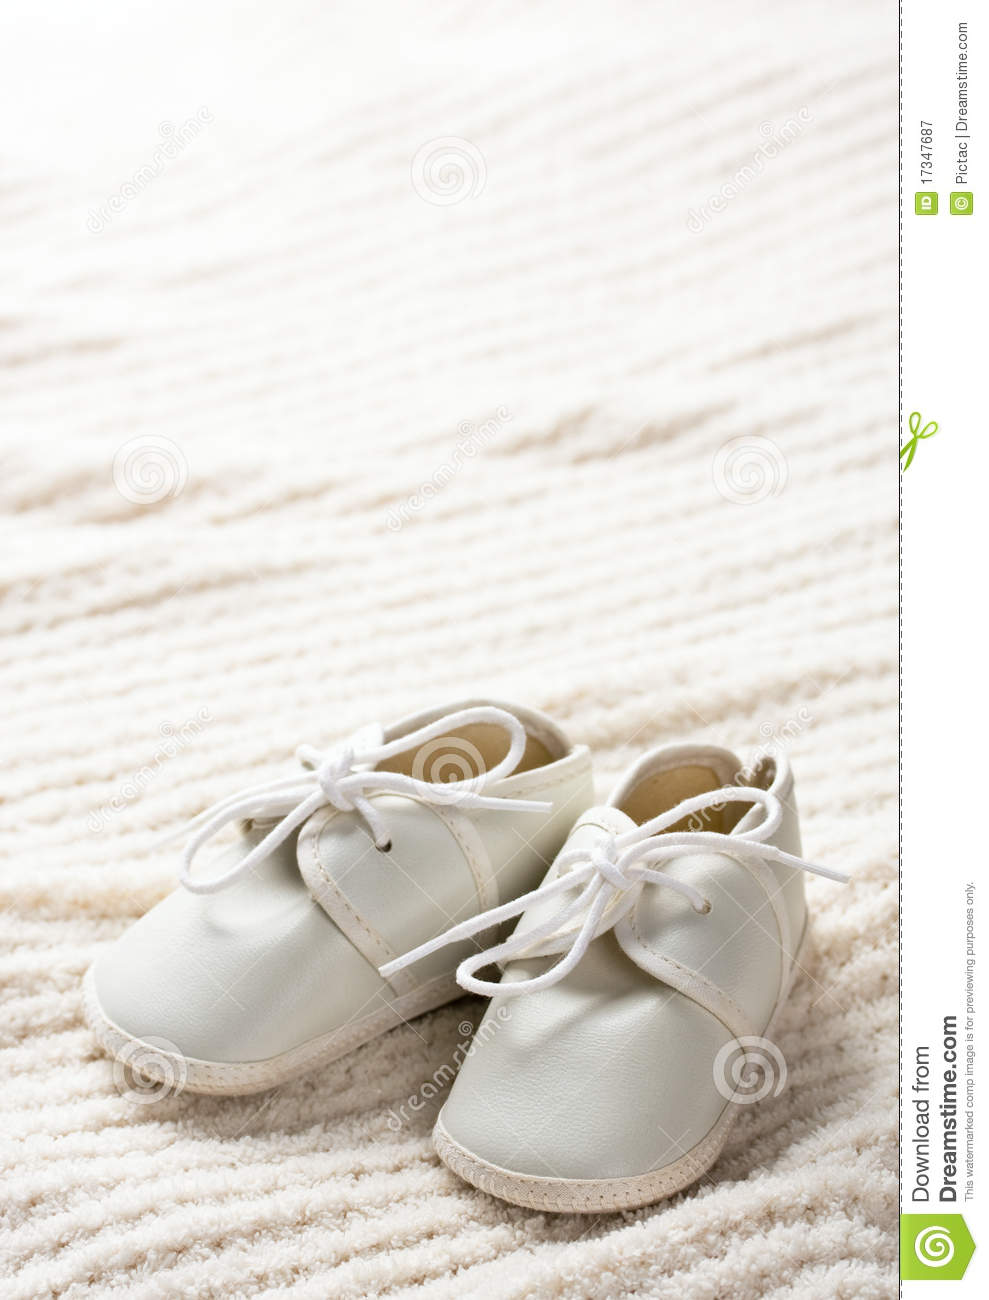 Baby Shoes And Blanket Royalty Free Stock Photography